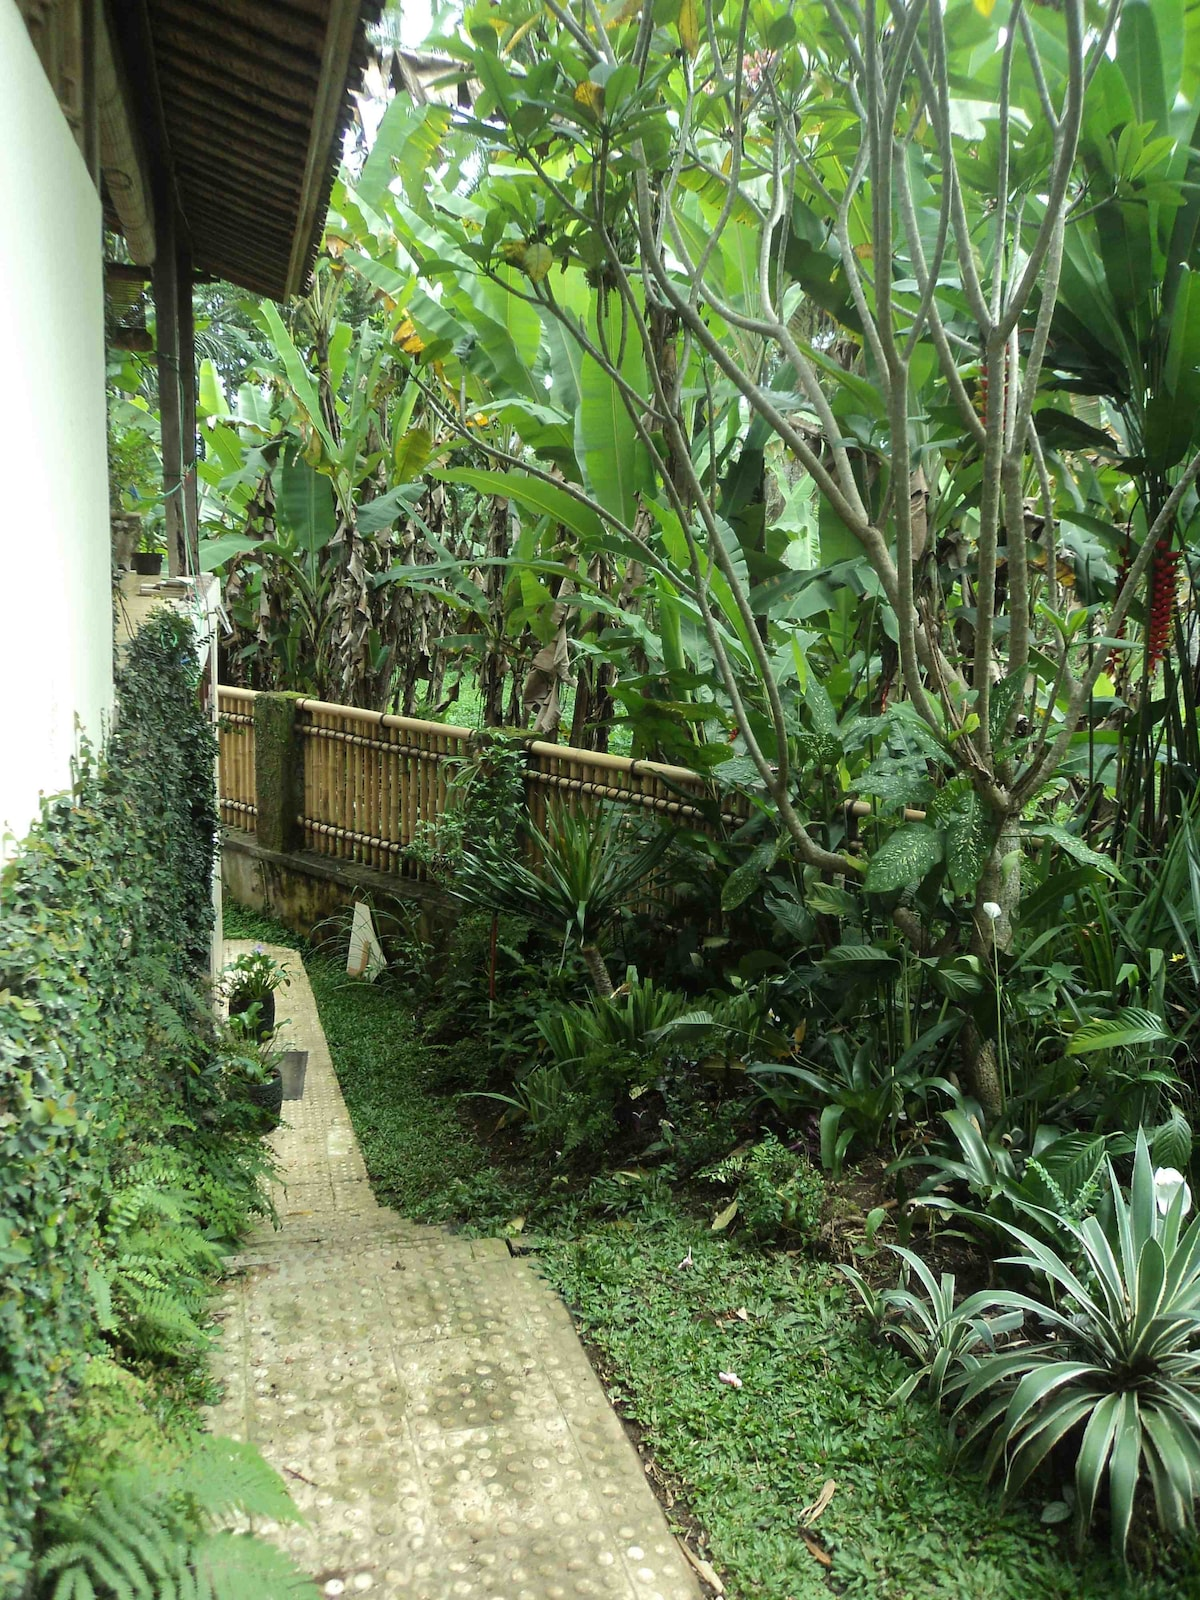 Private steps down to your garden and entrance.